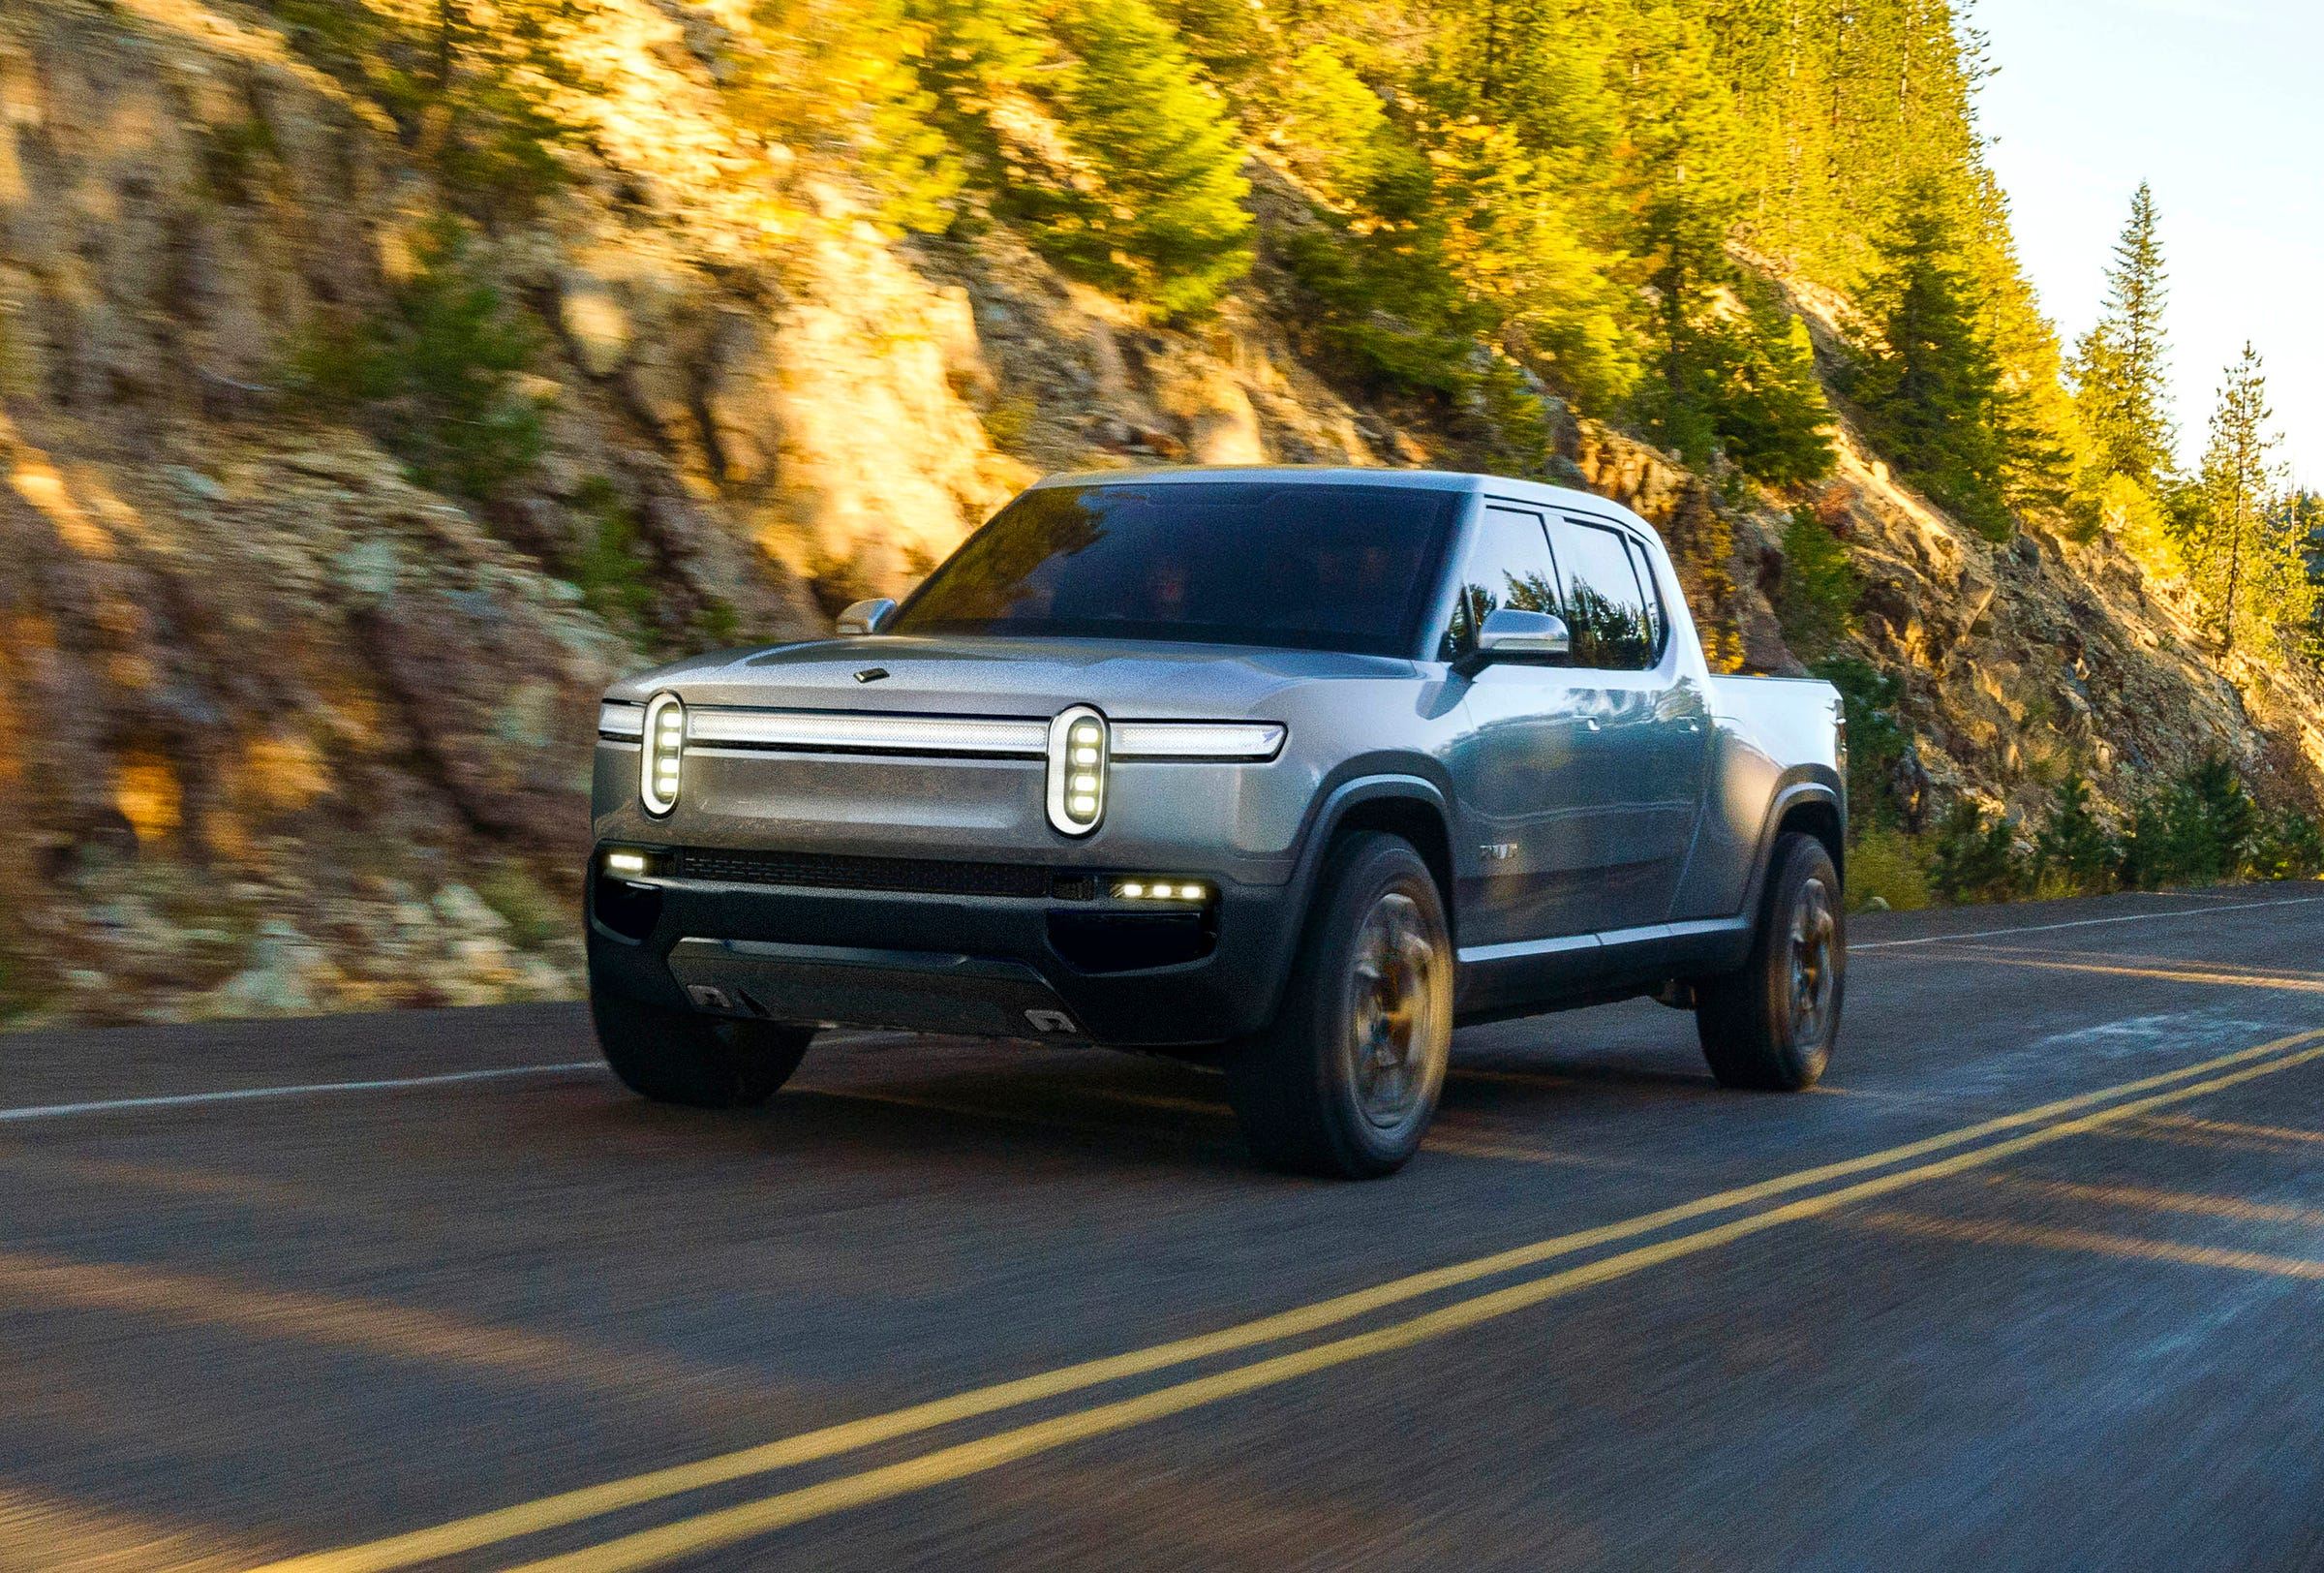 Electric pickups are generating buzz. Here s where future models like Tesla s Cybertruck,  Rivian s R1T are trending